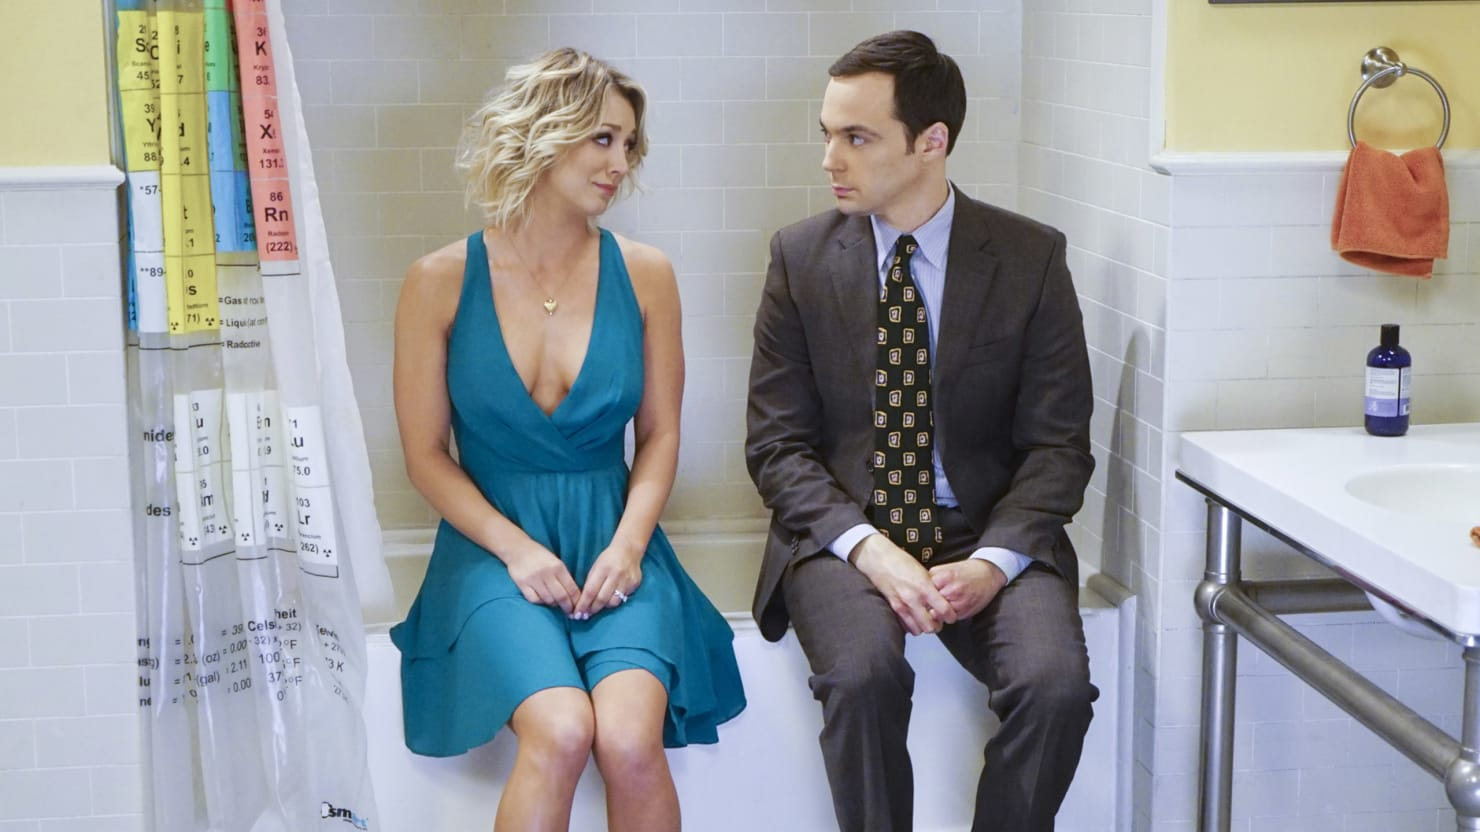 The Big Bang Theory's 200th Episode: Is It One of the Greatest Comedies Ever?